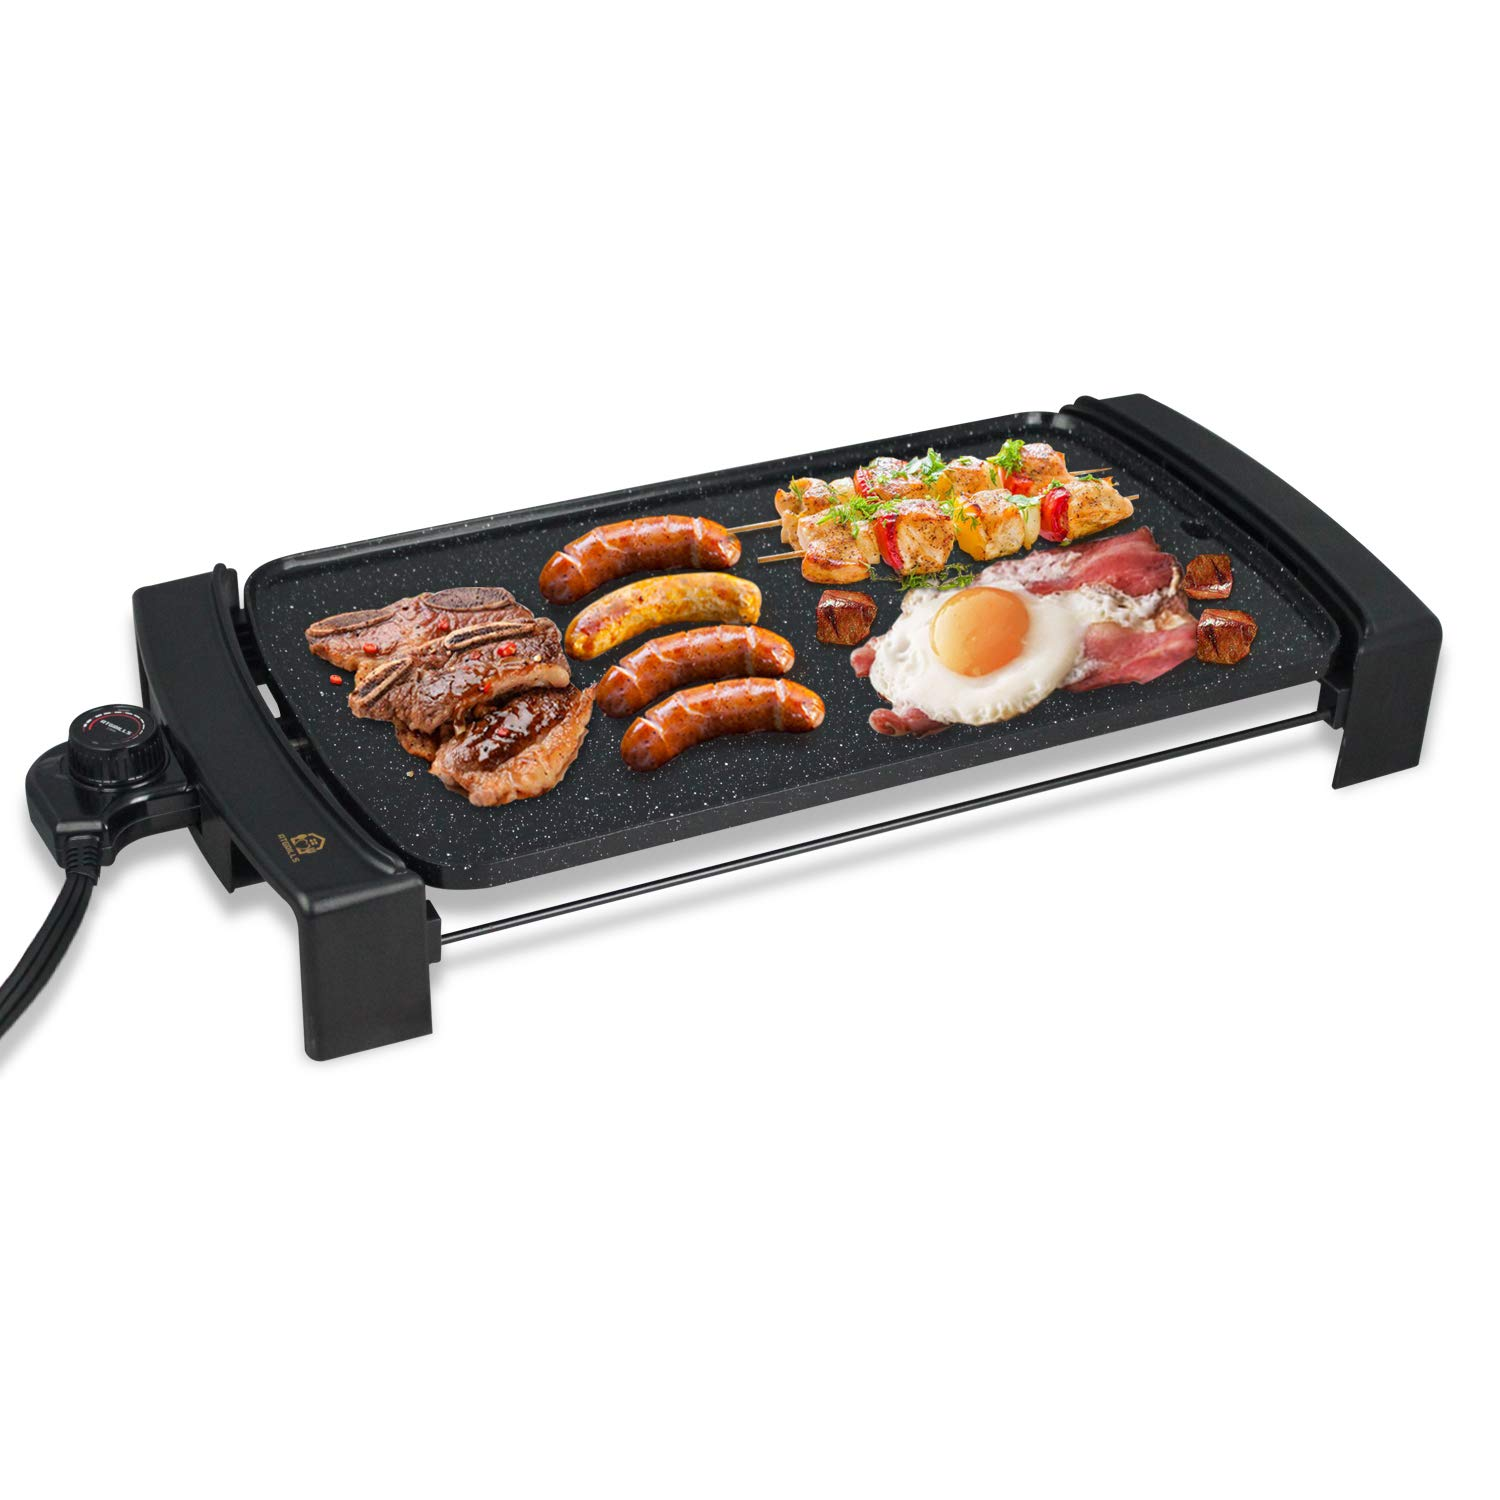 Electric Griddle Non-Stick, Smokeless Indoor & Outdoor Portable Pancake Griddle w/Drip Tray & Cool-touch Handles & Temperature Control, 10''x21'' Family-Sized -Black